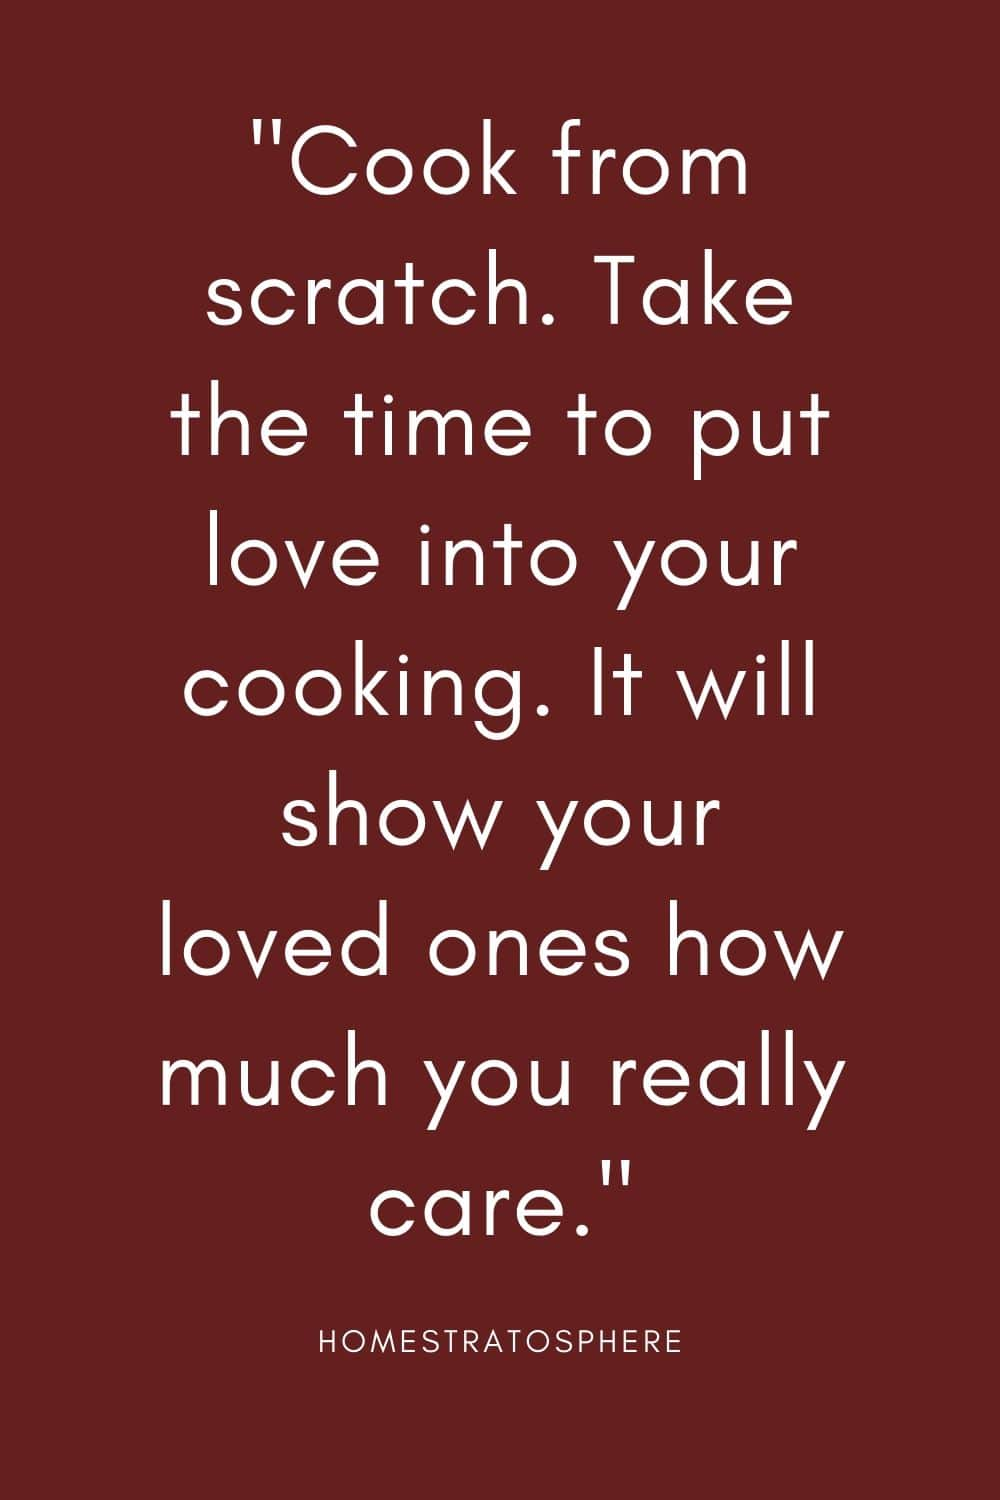 """Cook from scratch. Take the time to put love into your cooking. It will show your loved ones how much you really care."""